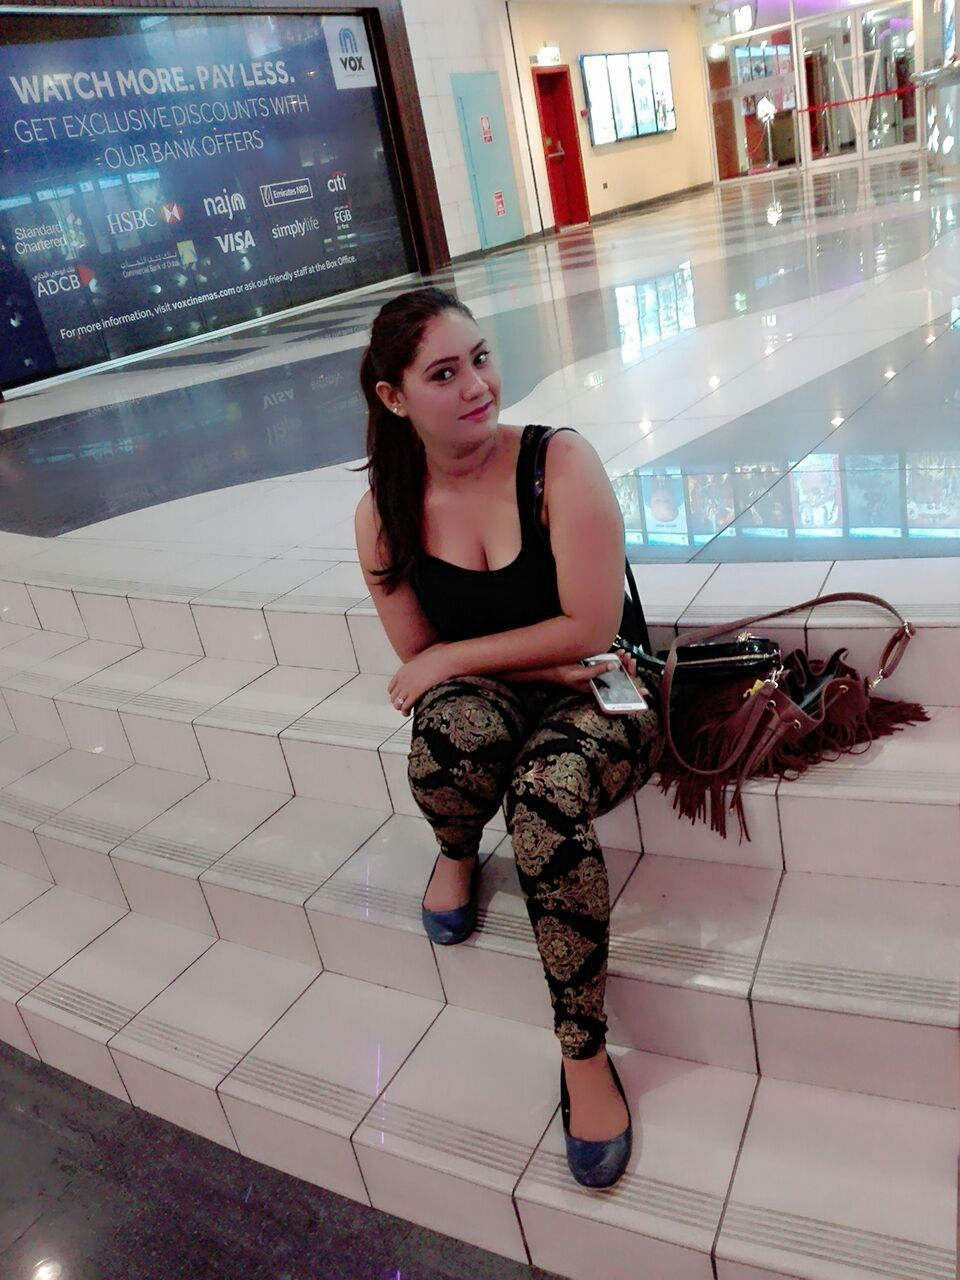 Welcome to our platform lucknowgirls.com (one of Lucknow's popular and highest demand esco ...